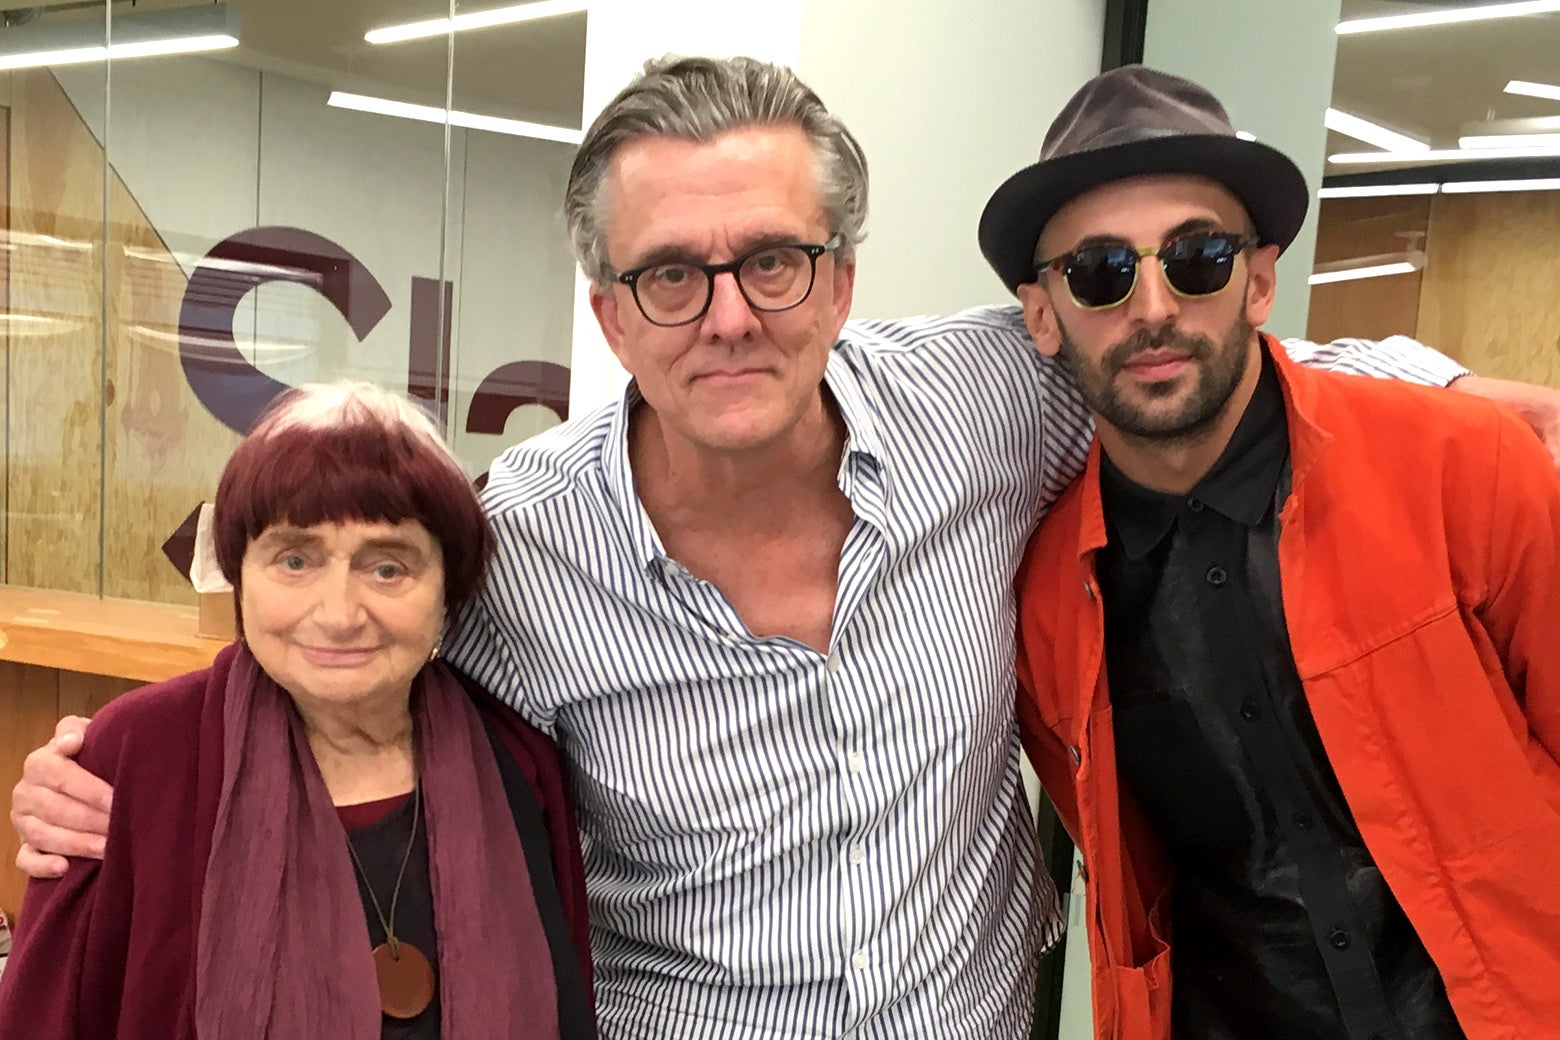 Agnès Varda poses with Kurt Andersen and JR at the Slate office in Brooklyn, New York, in 2017.